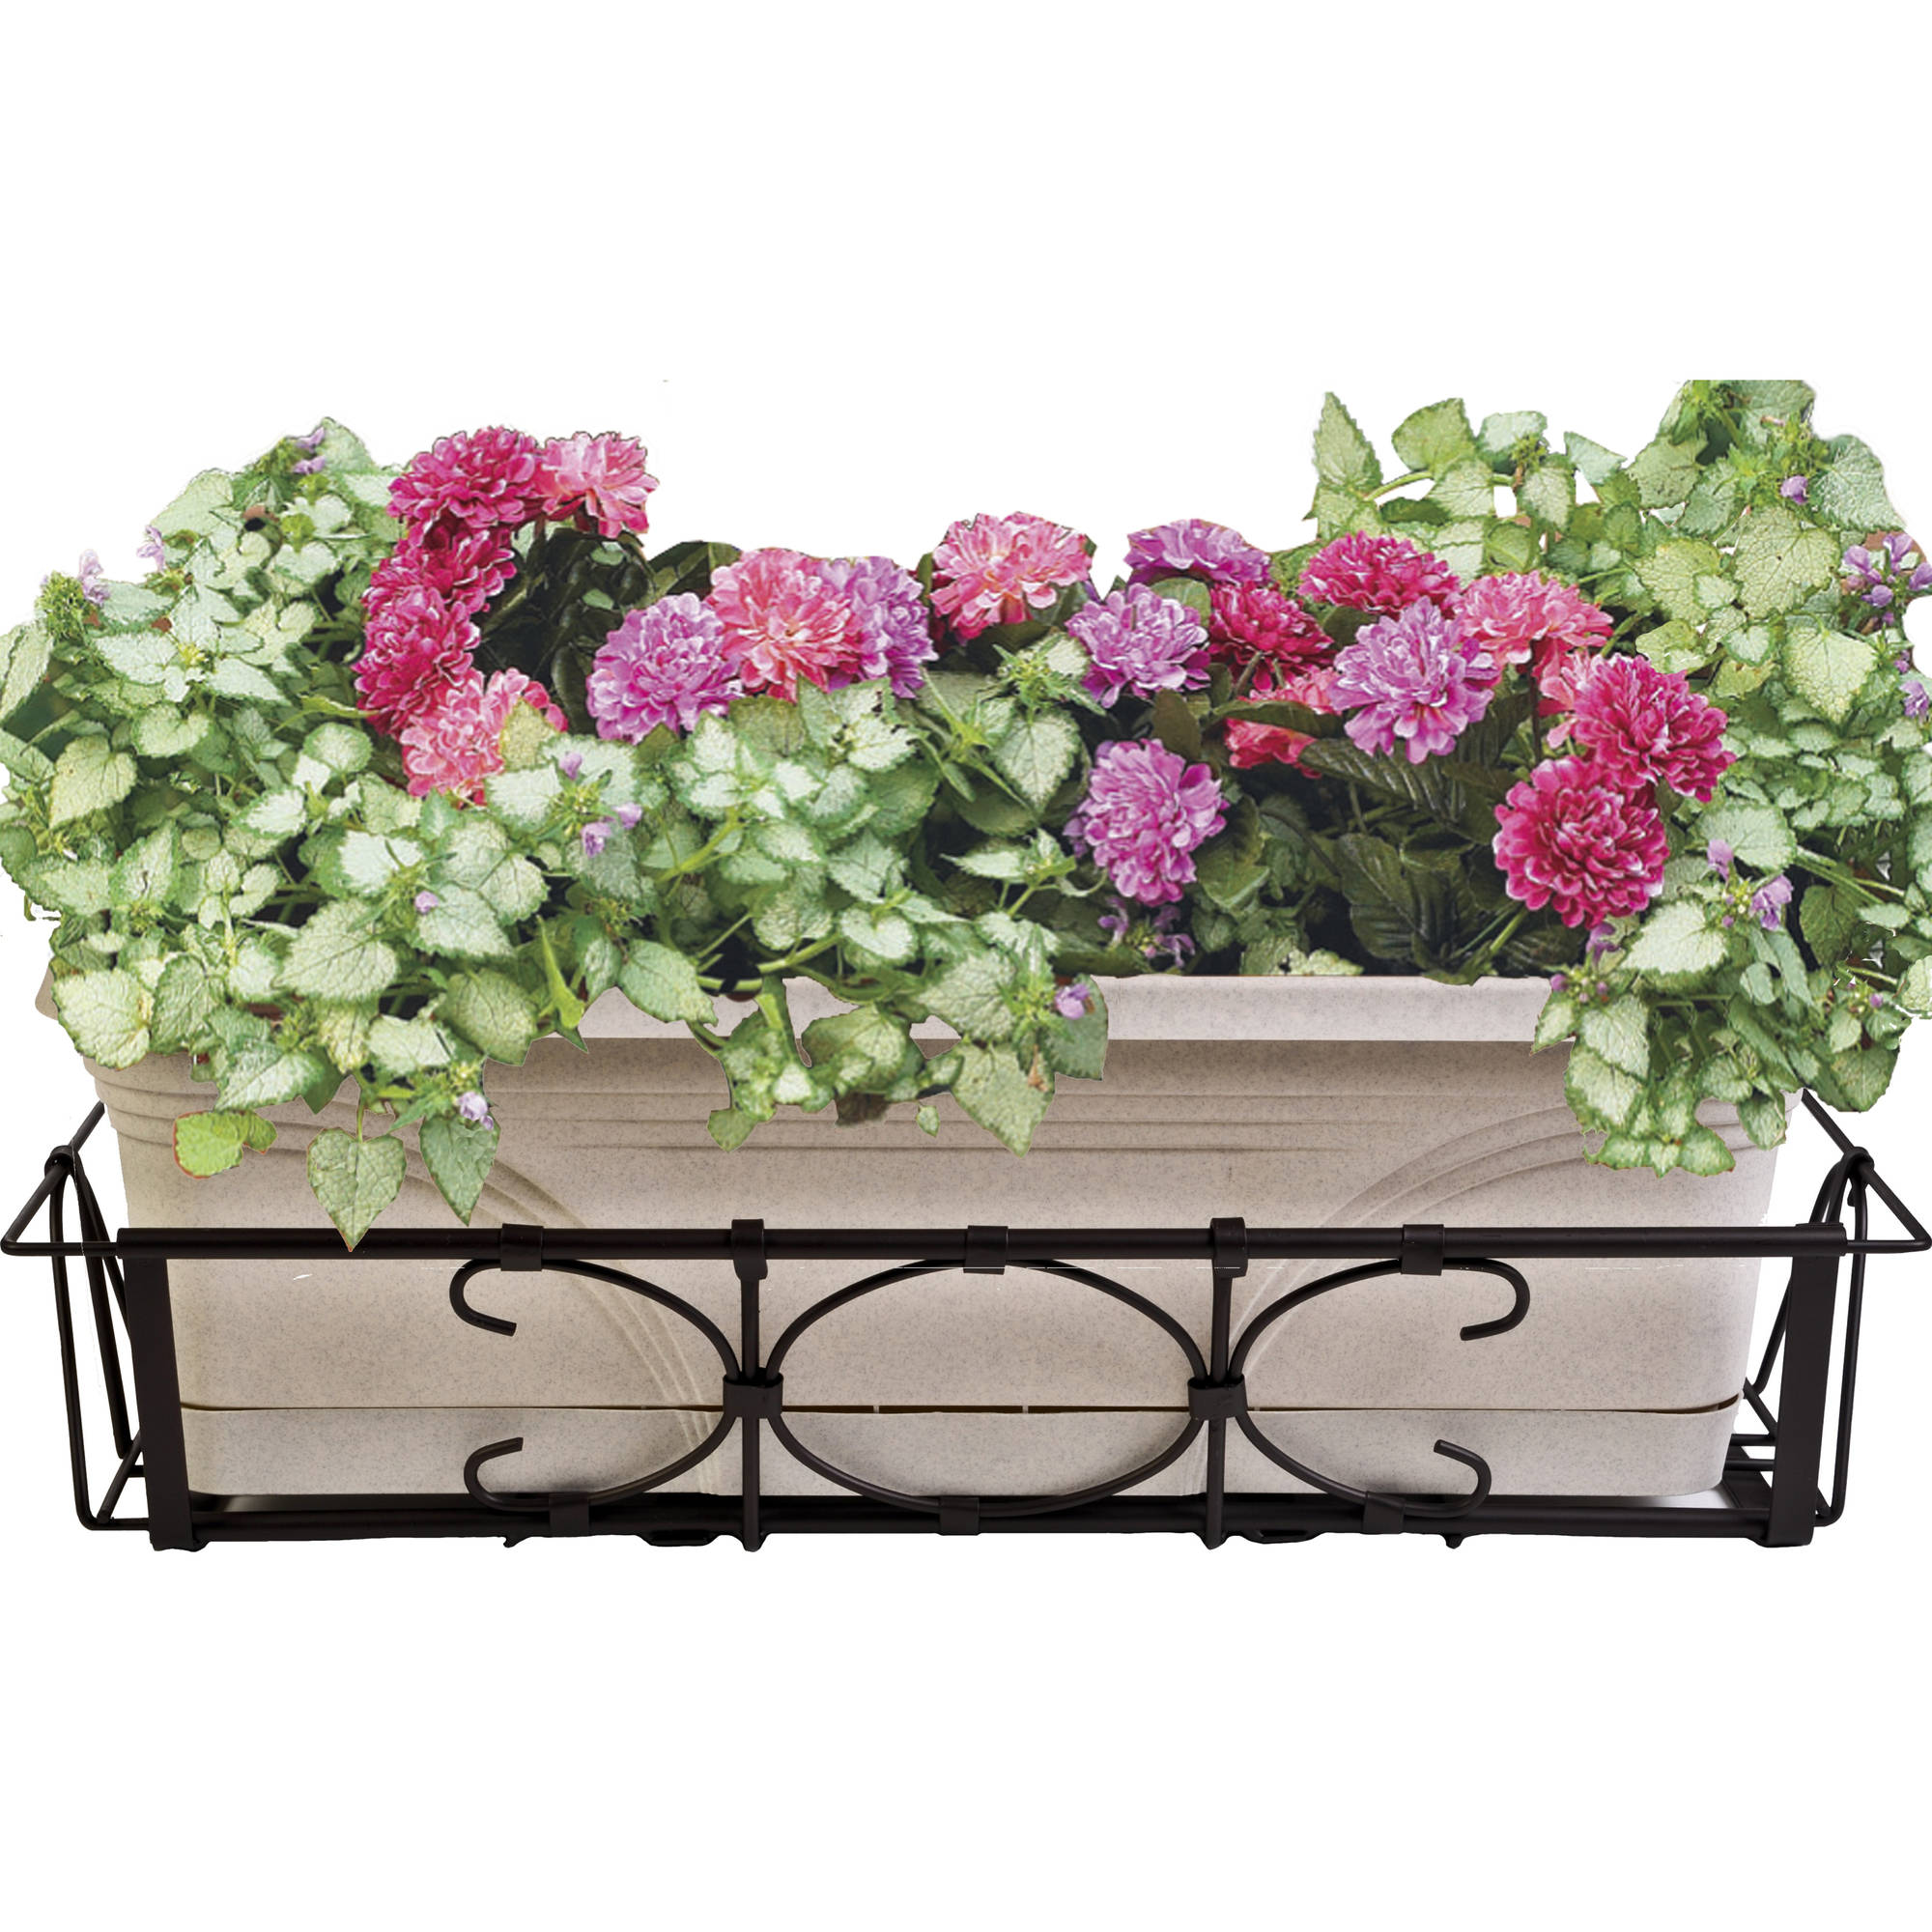 Cobraco Kingston Adjule And Expandable Bronze Flower Box Holder